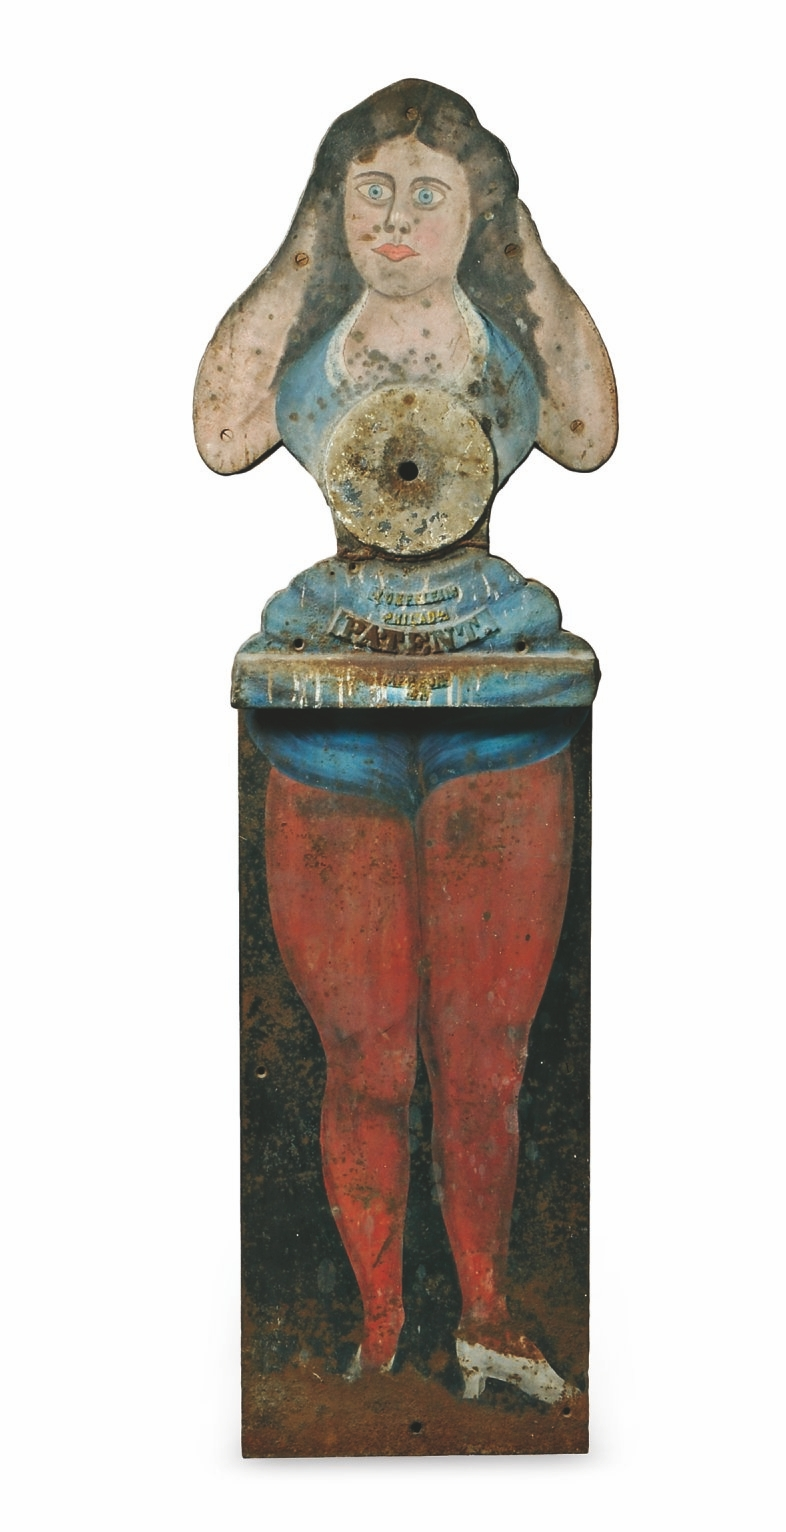 This cast-iron figure of a woman is a rare, life-size shooting gallery target that is more than 100 years old. Skinner auctions sold her in March 2015 in Boston for $43,050, eight times the high estimated price.